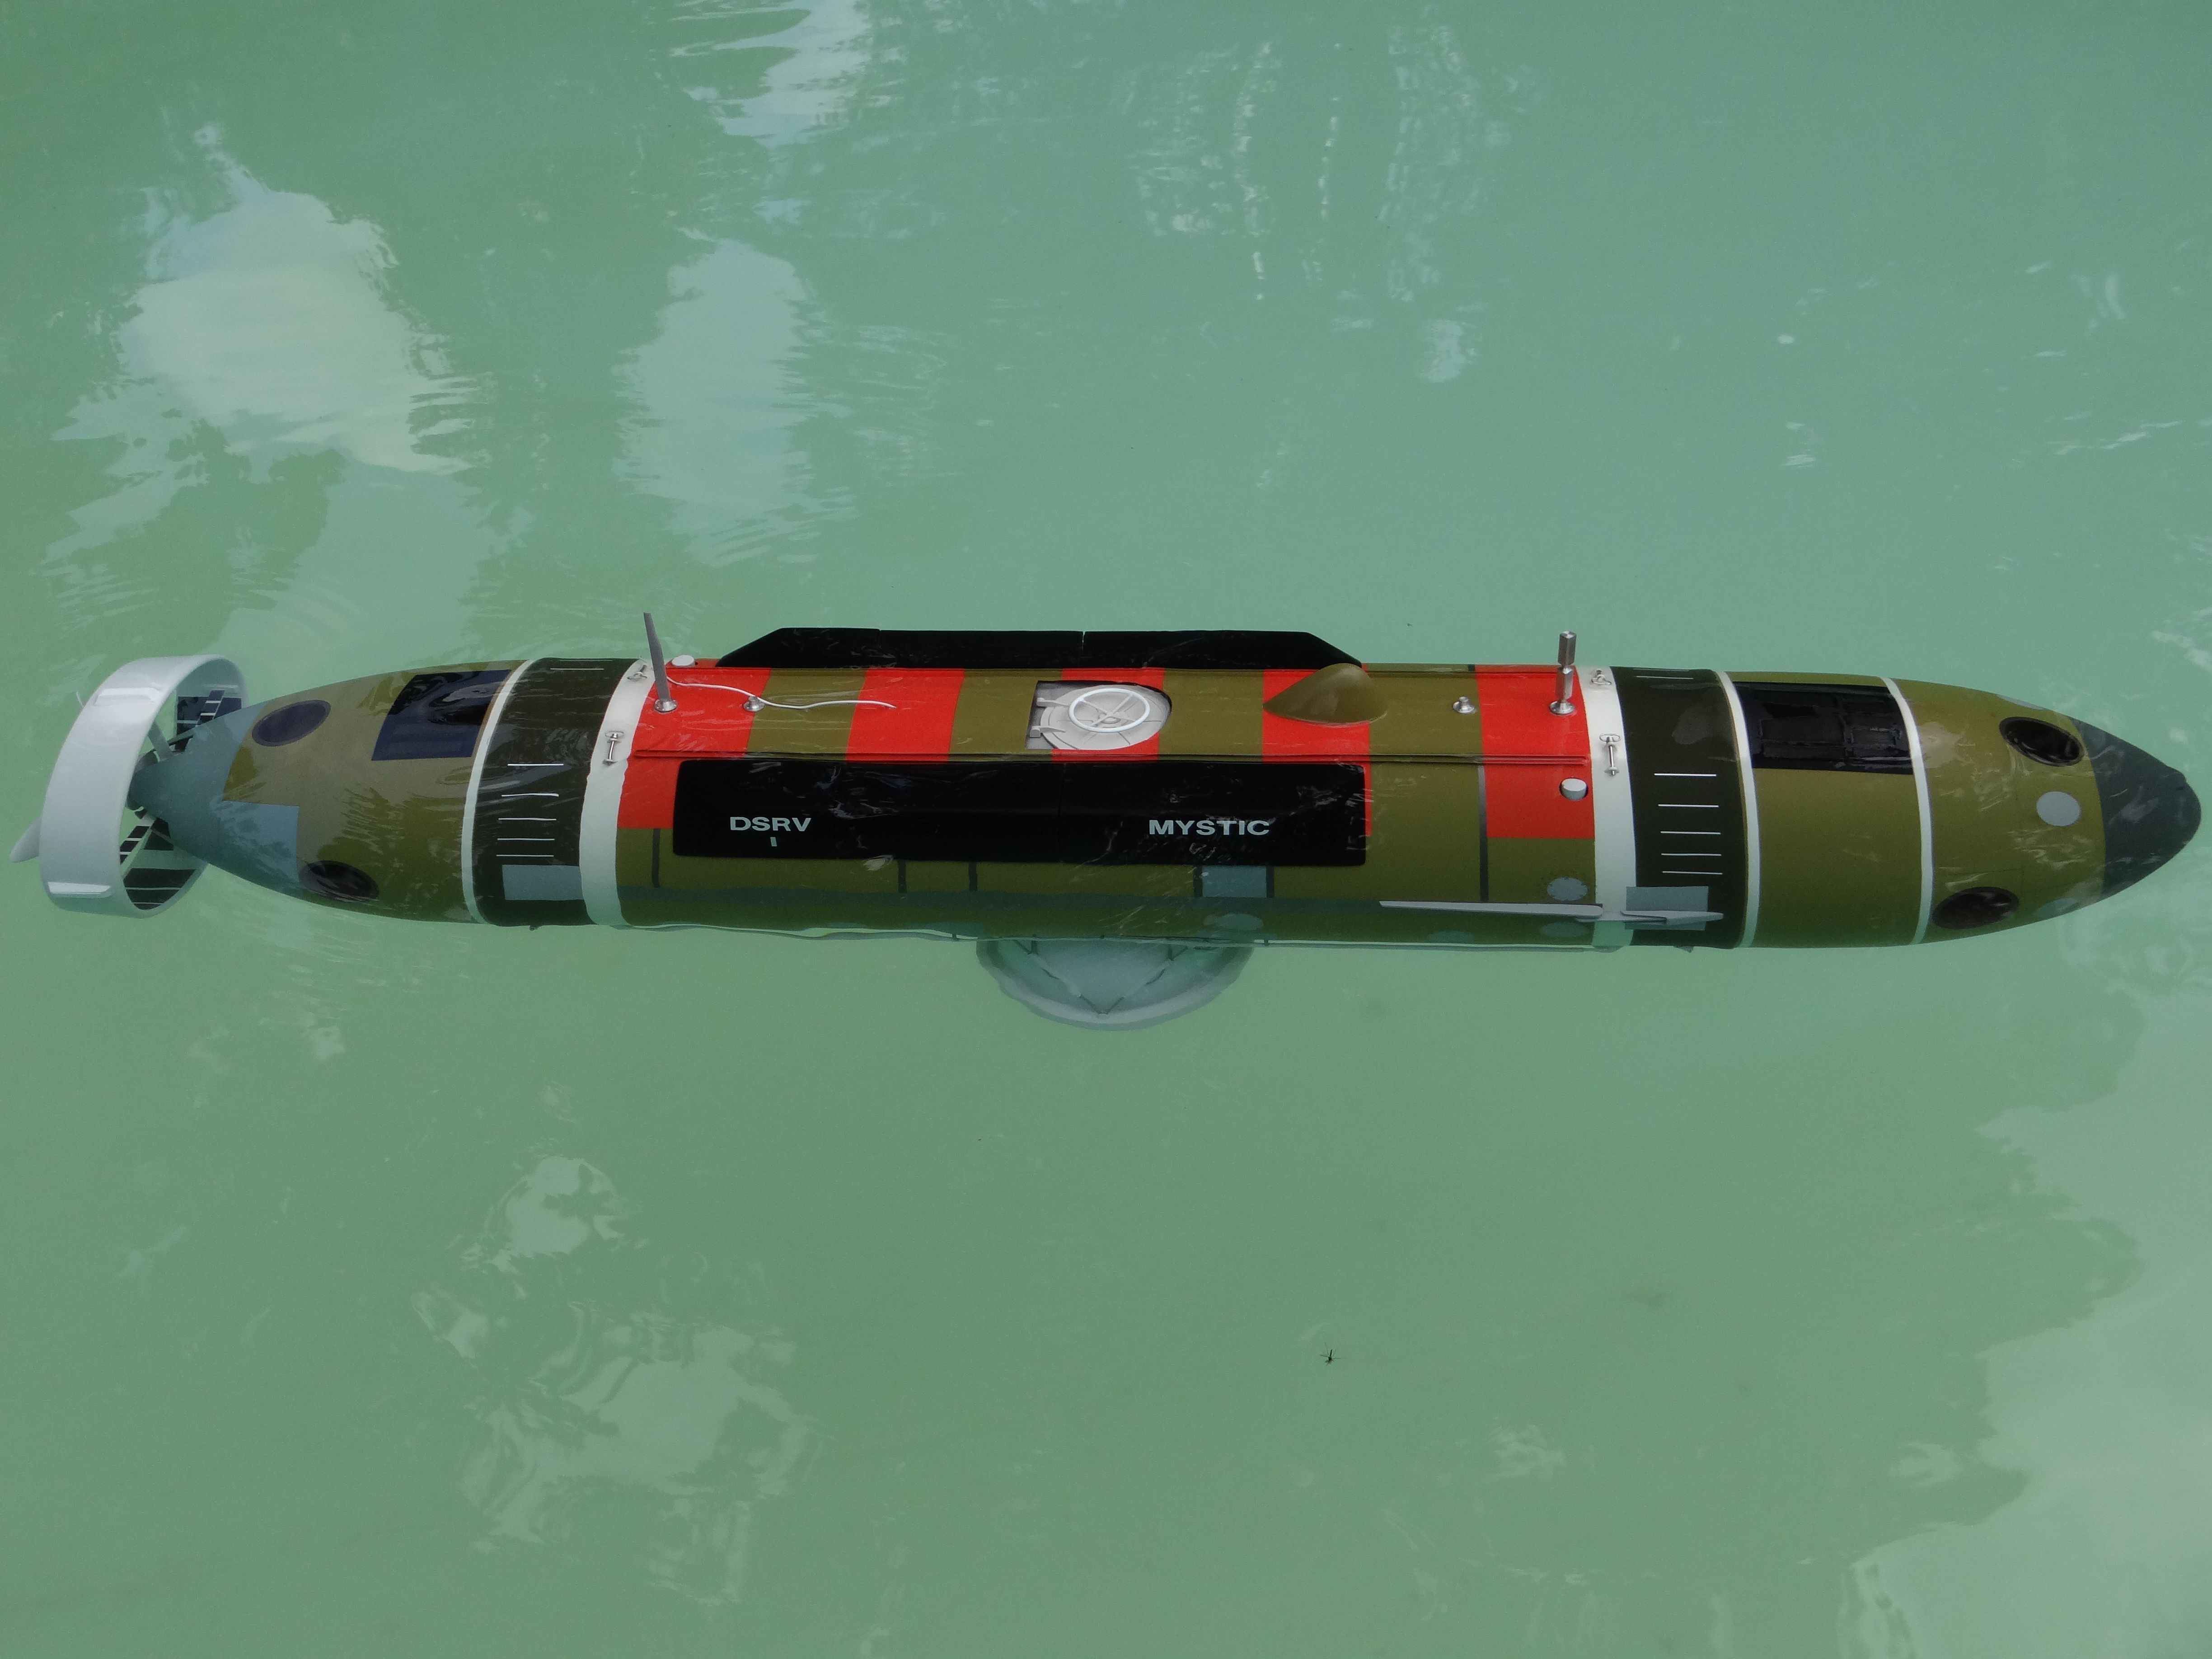 RC model of DSRV MYSTIC in my pool, runs and looks great